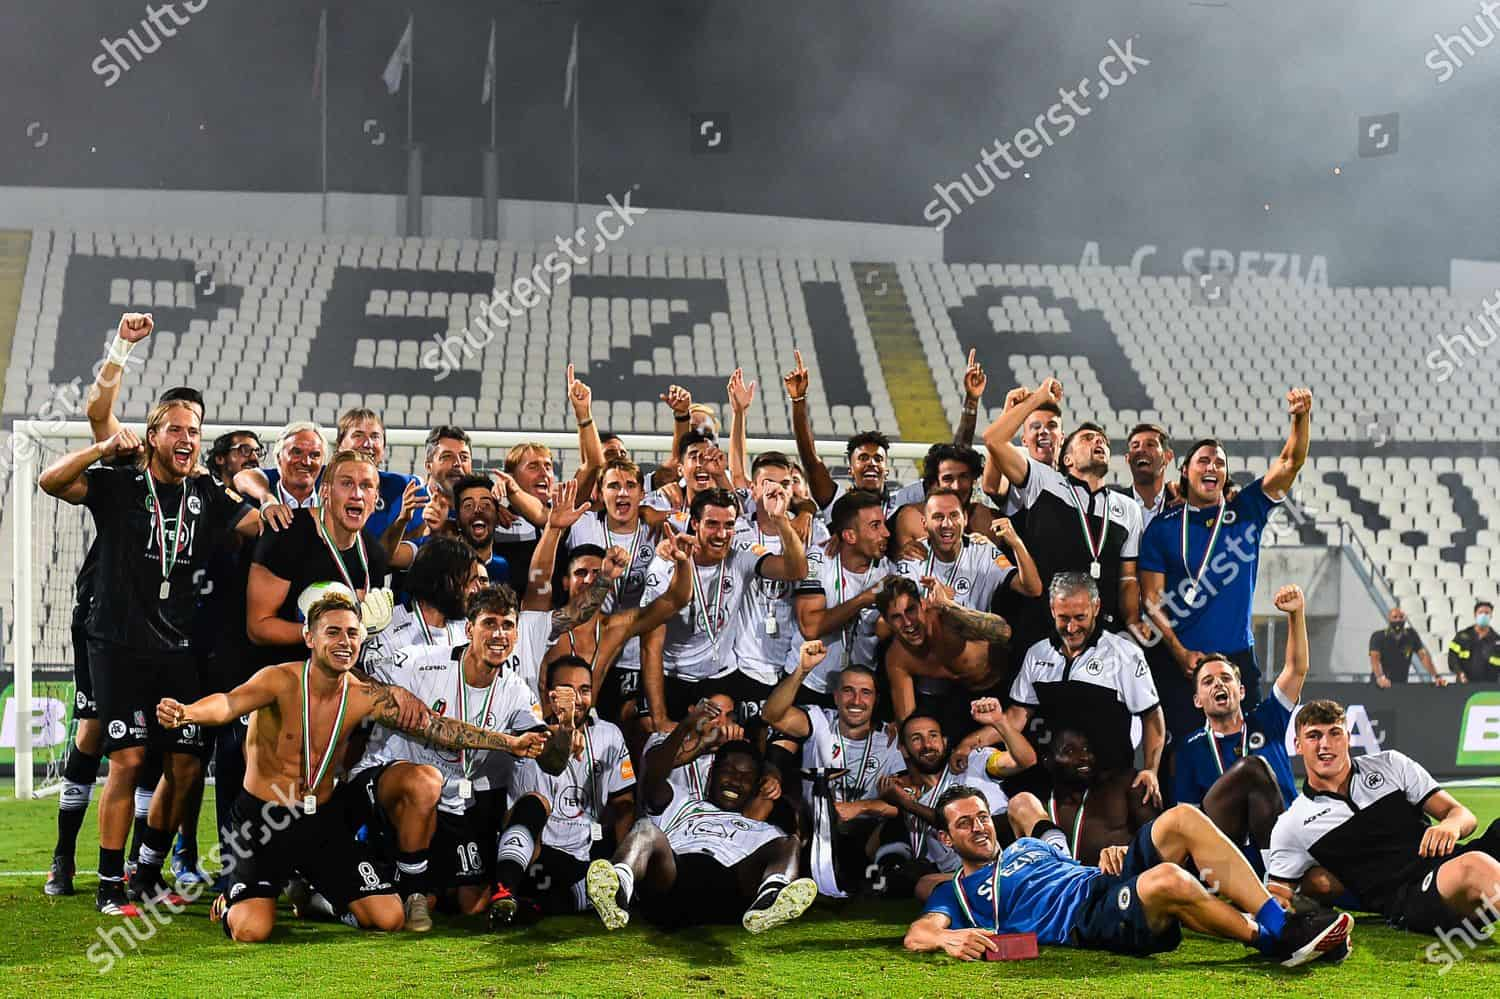 Spezia qualified for Serie A this season for the first time in its 114-year history.